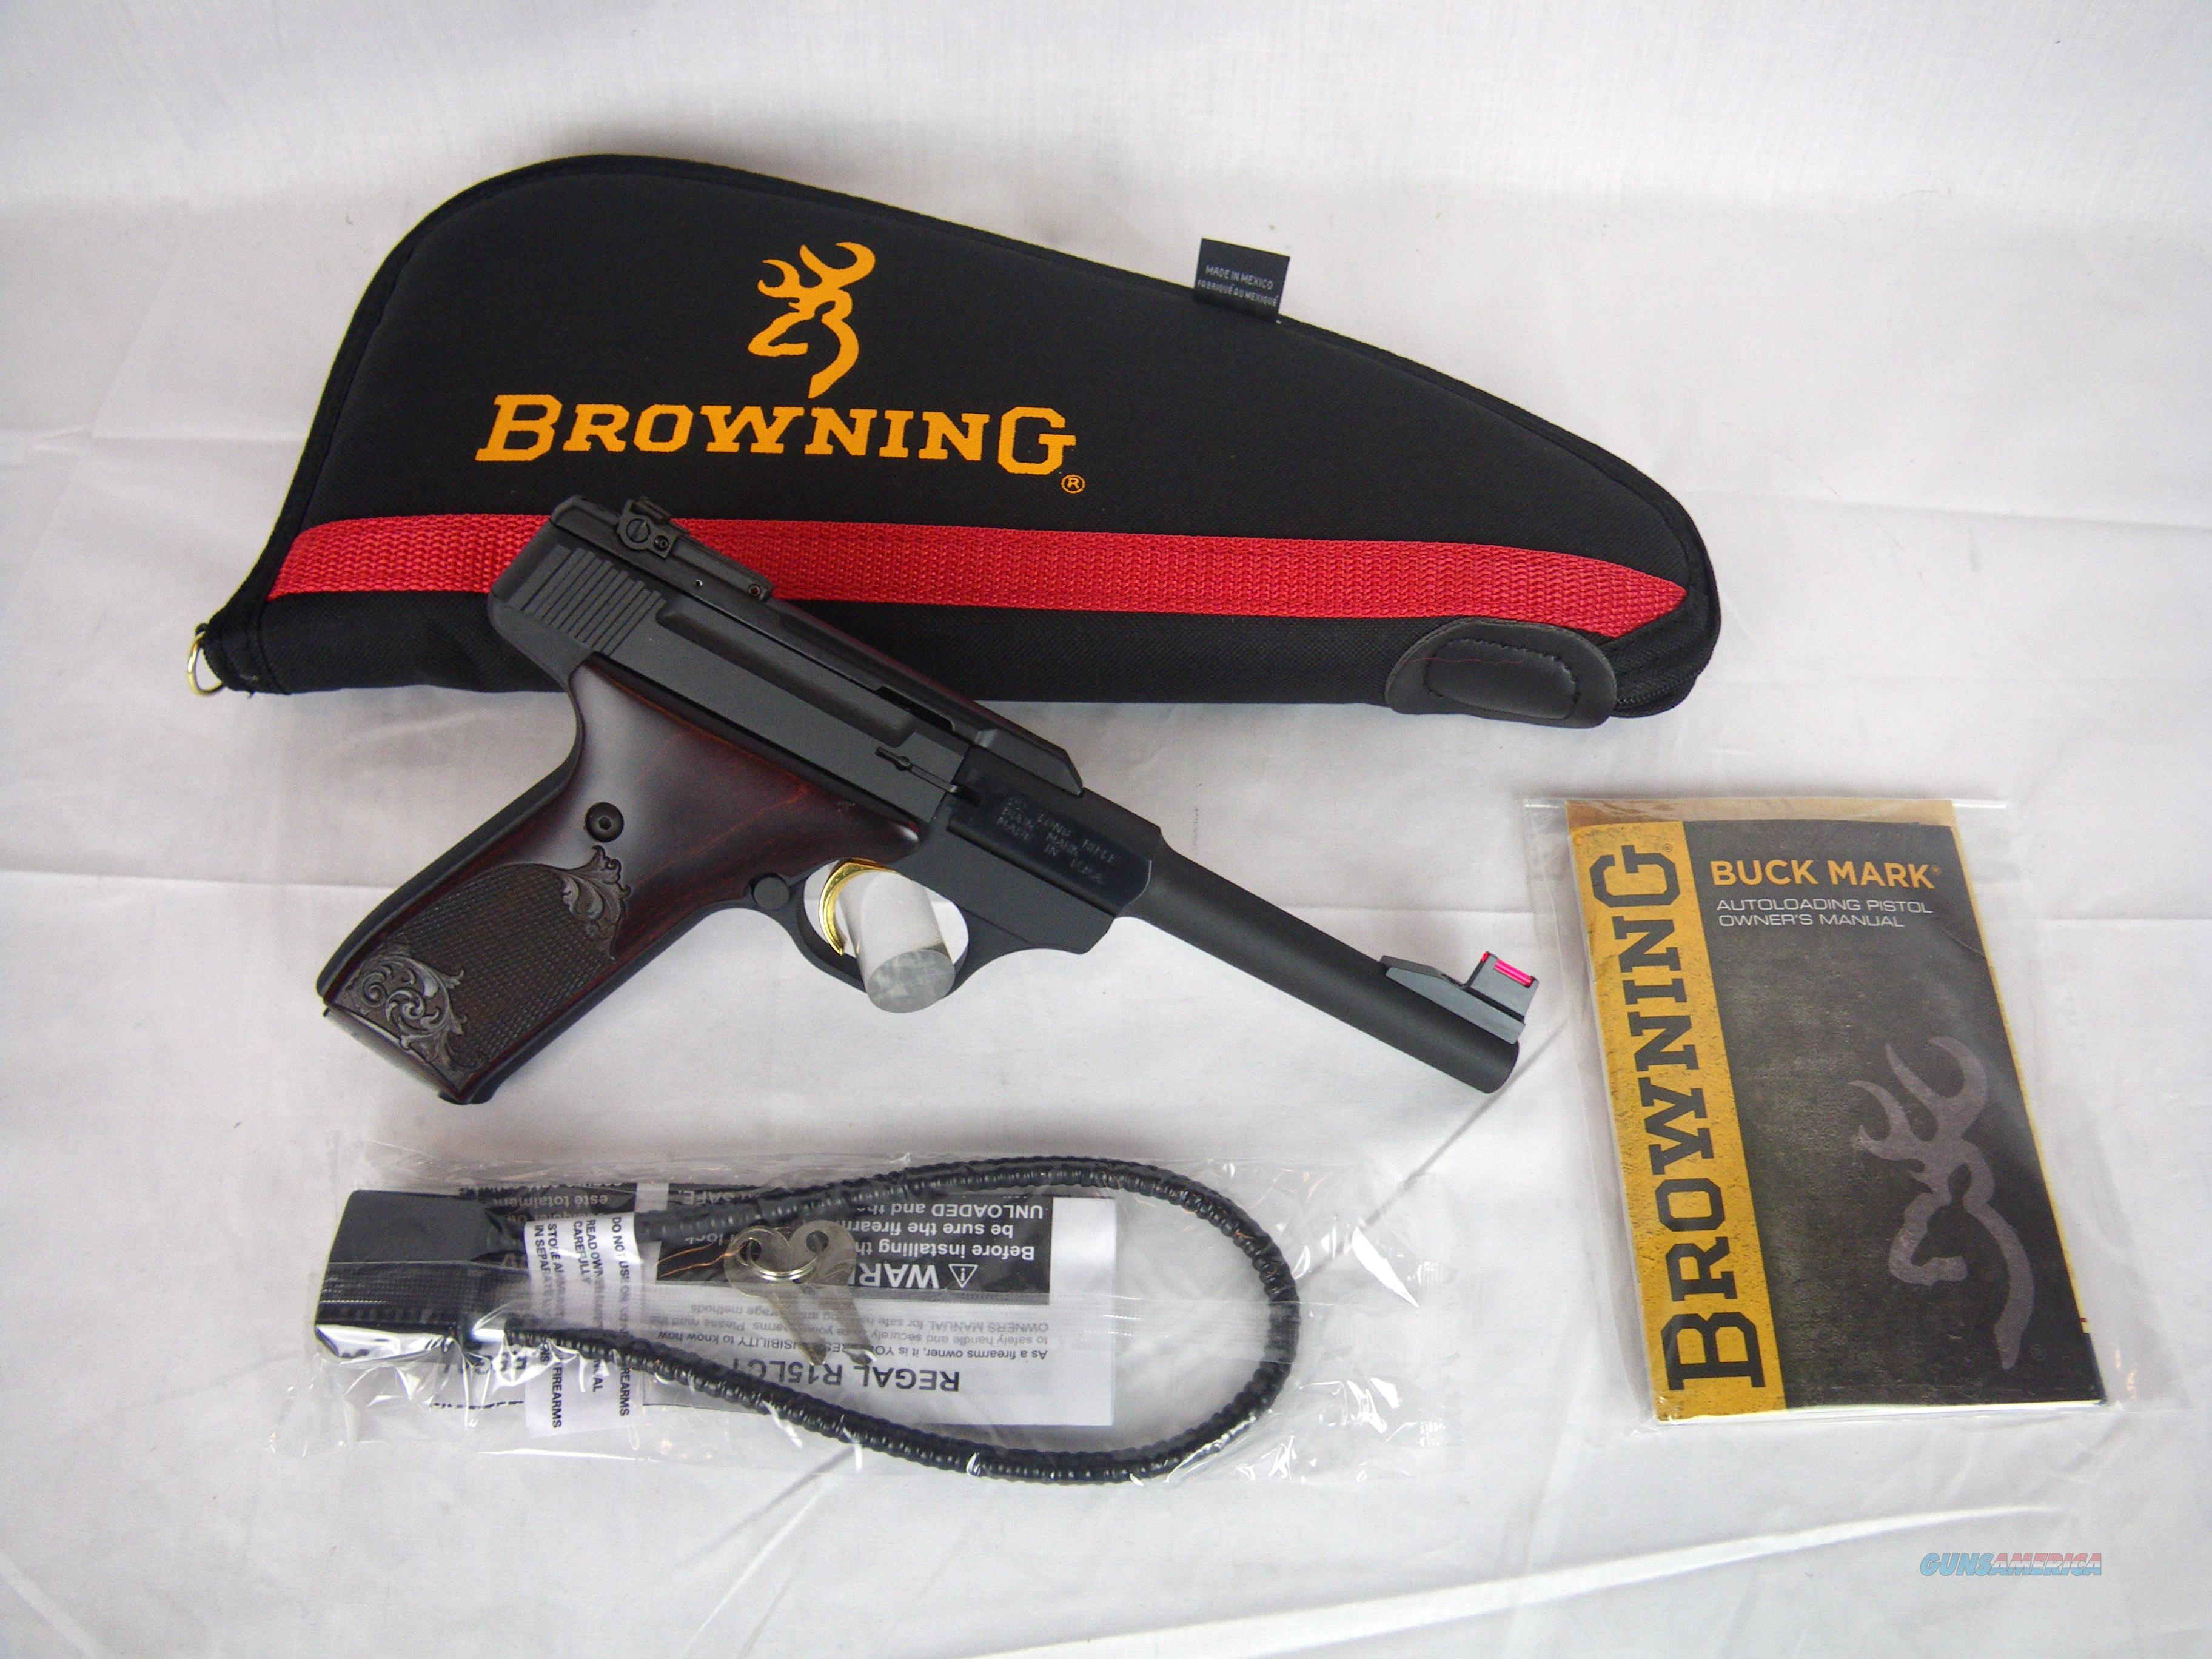 "Browning Buckmark Challenge Rosewood 22lr 5.5"" NEW #051519490  Guns > Pistols > Browning Pistols > Buckmark"